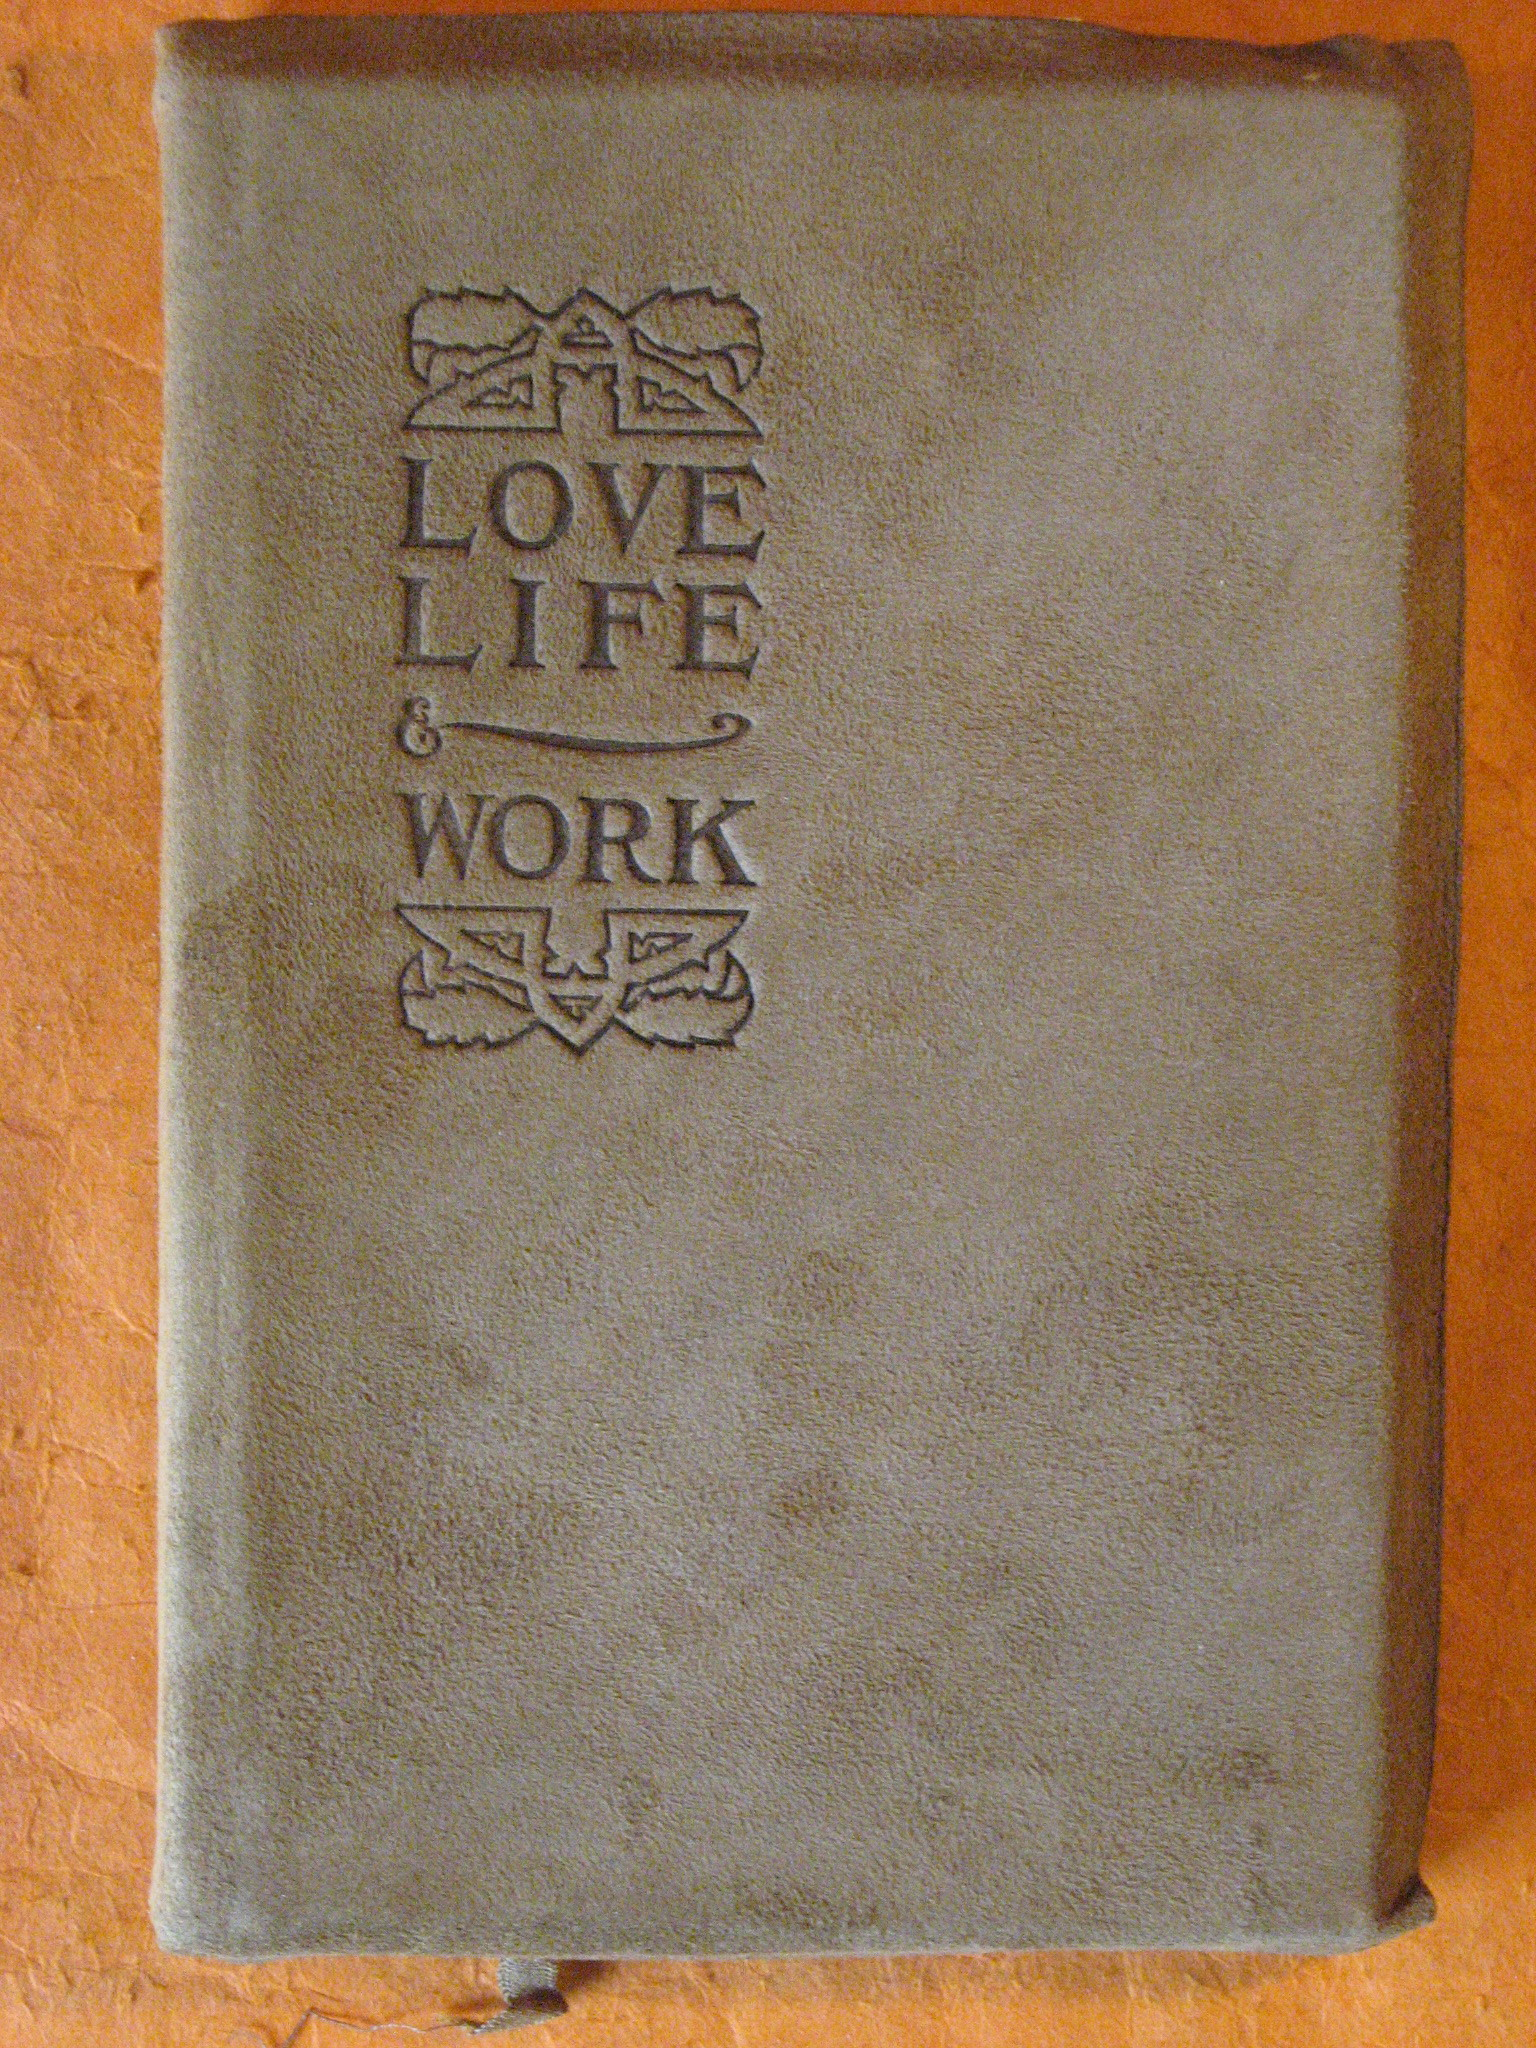 Love Life & Work:  Being a Book of Opinions Reasonably good-natured Concerning how to Attain the Highest Happiness for One's Self with the Least Possible Harm to Others, Hubbard, Elbert